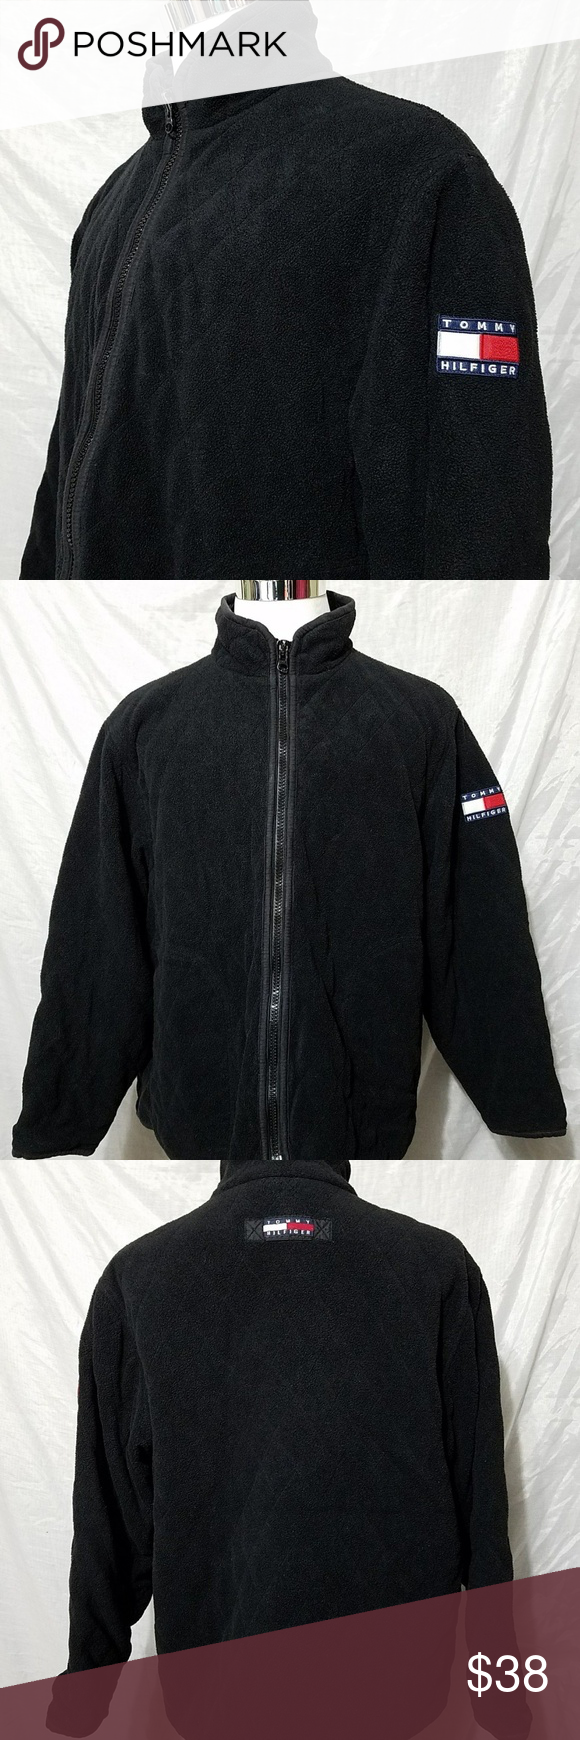 Vtg tommy hilfiger menus fleece jacket xl quilted my posh closet